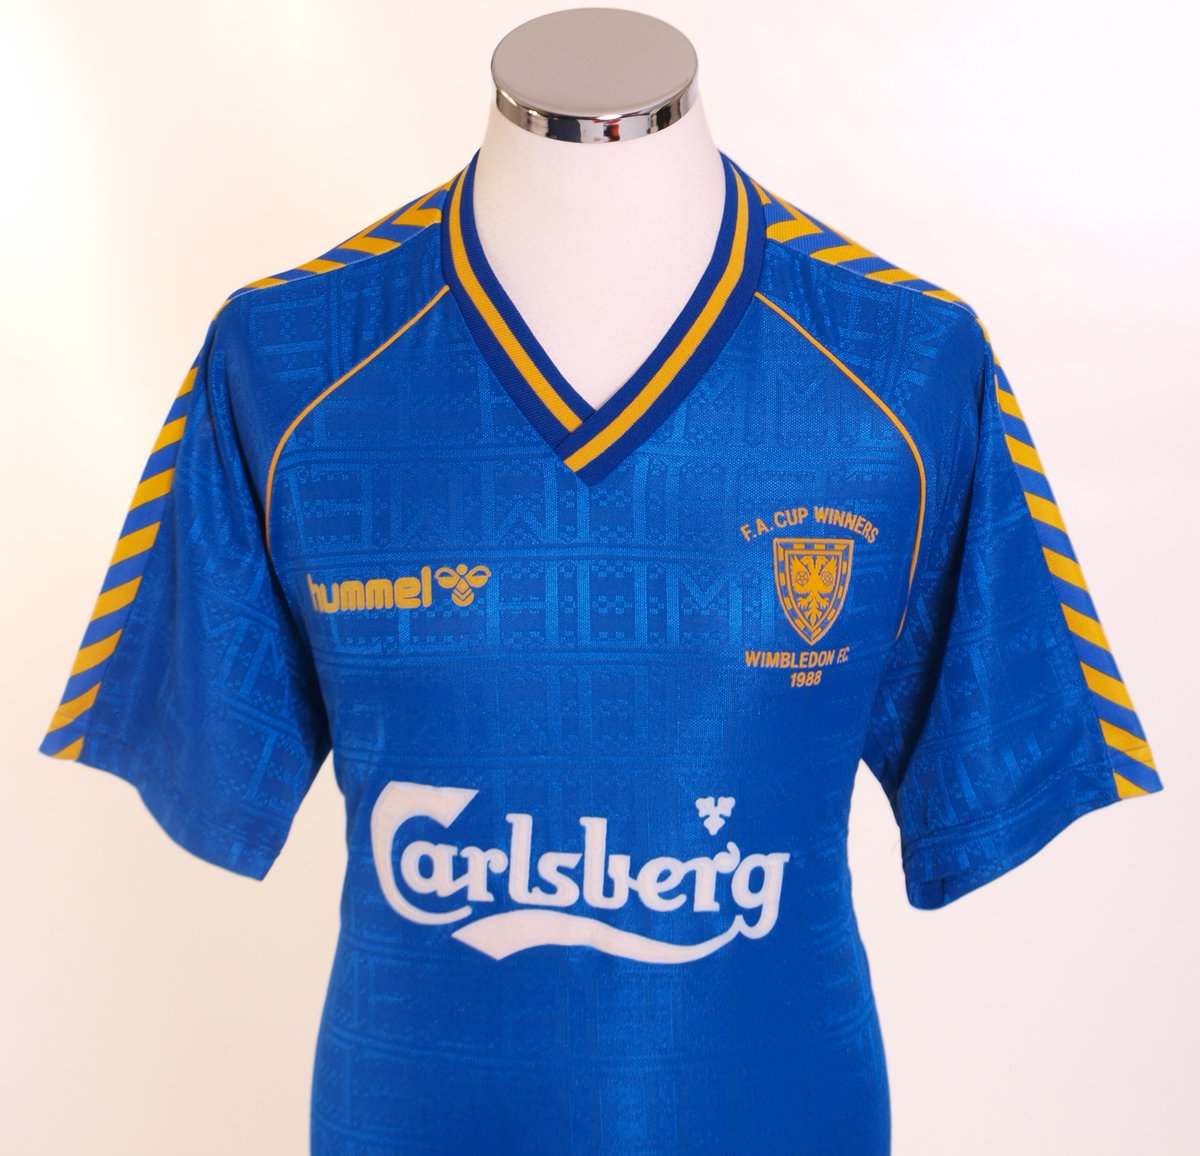 5022f2d59b2 Chevrons, Pinstripes And Vikings: Top 10 Classic Hummel Football Kits Of  Yesteryear